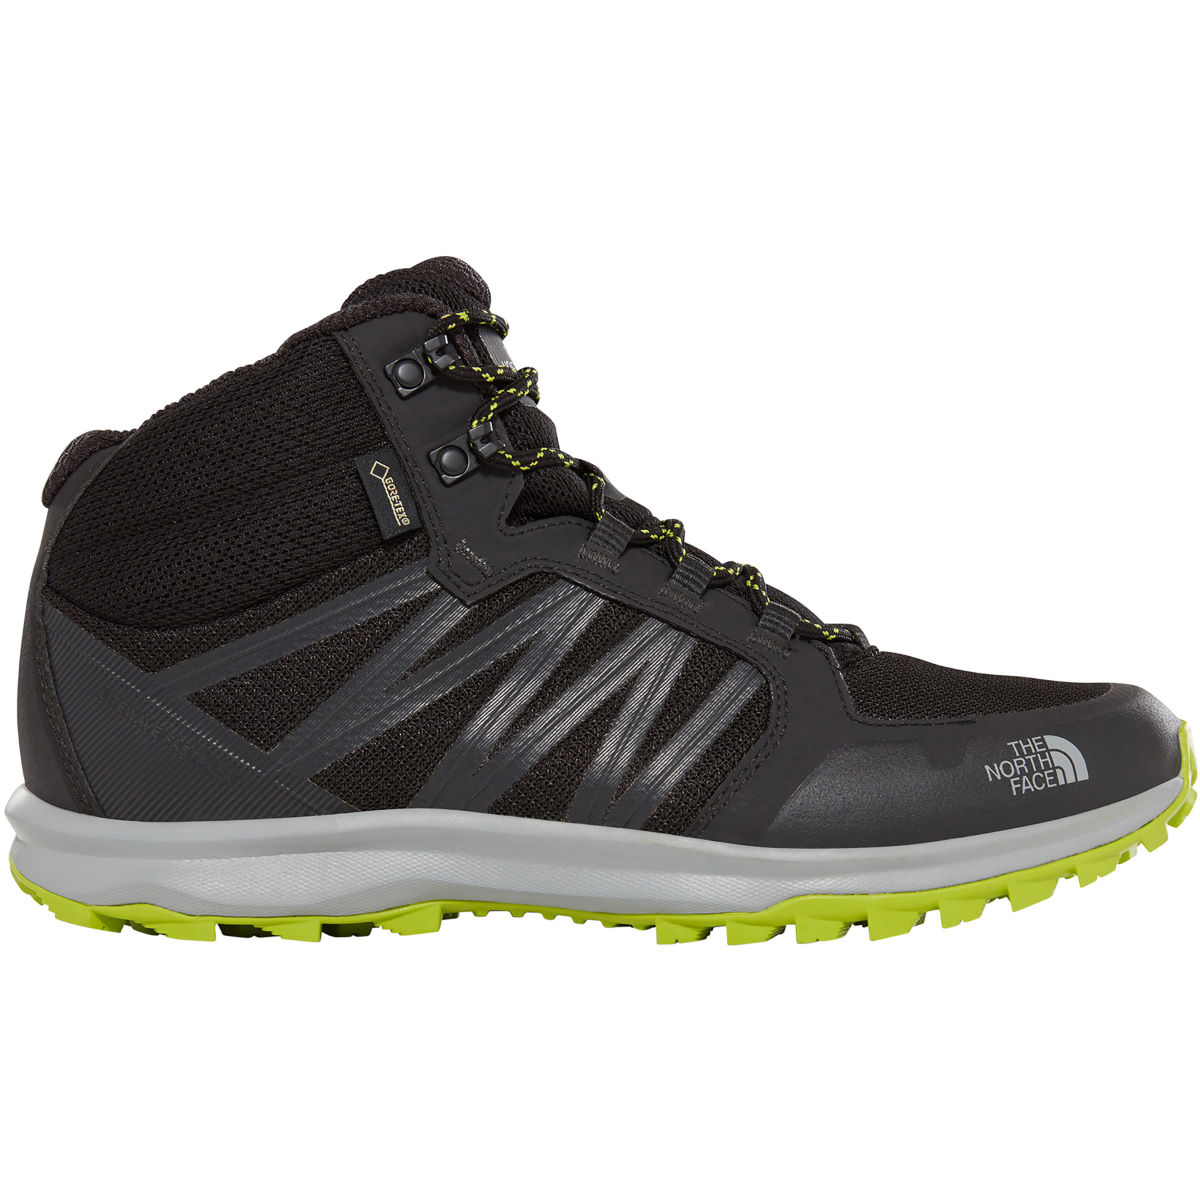 The North Face The North Face Litewave Fastpack Mid GTX Shoes   Shoes